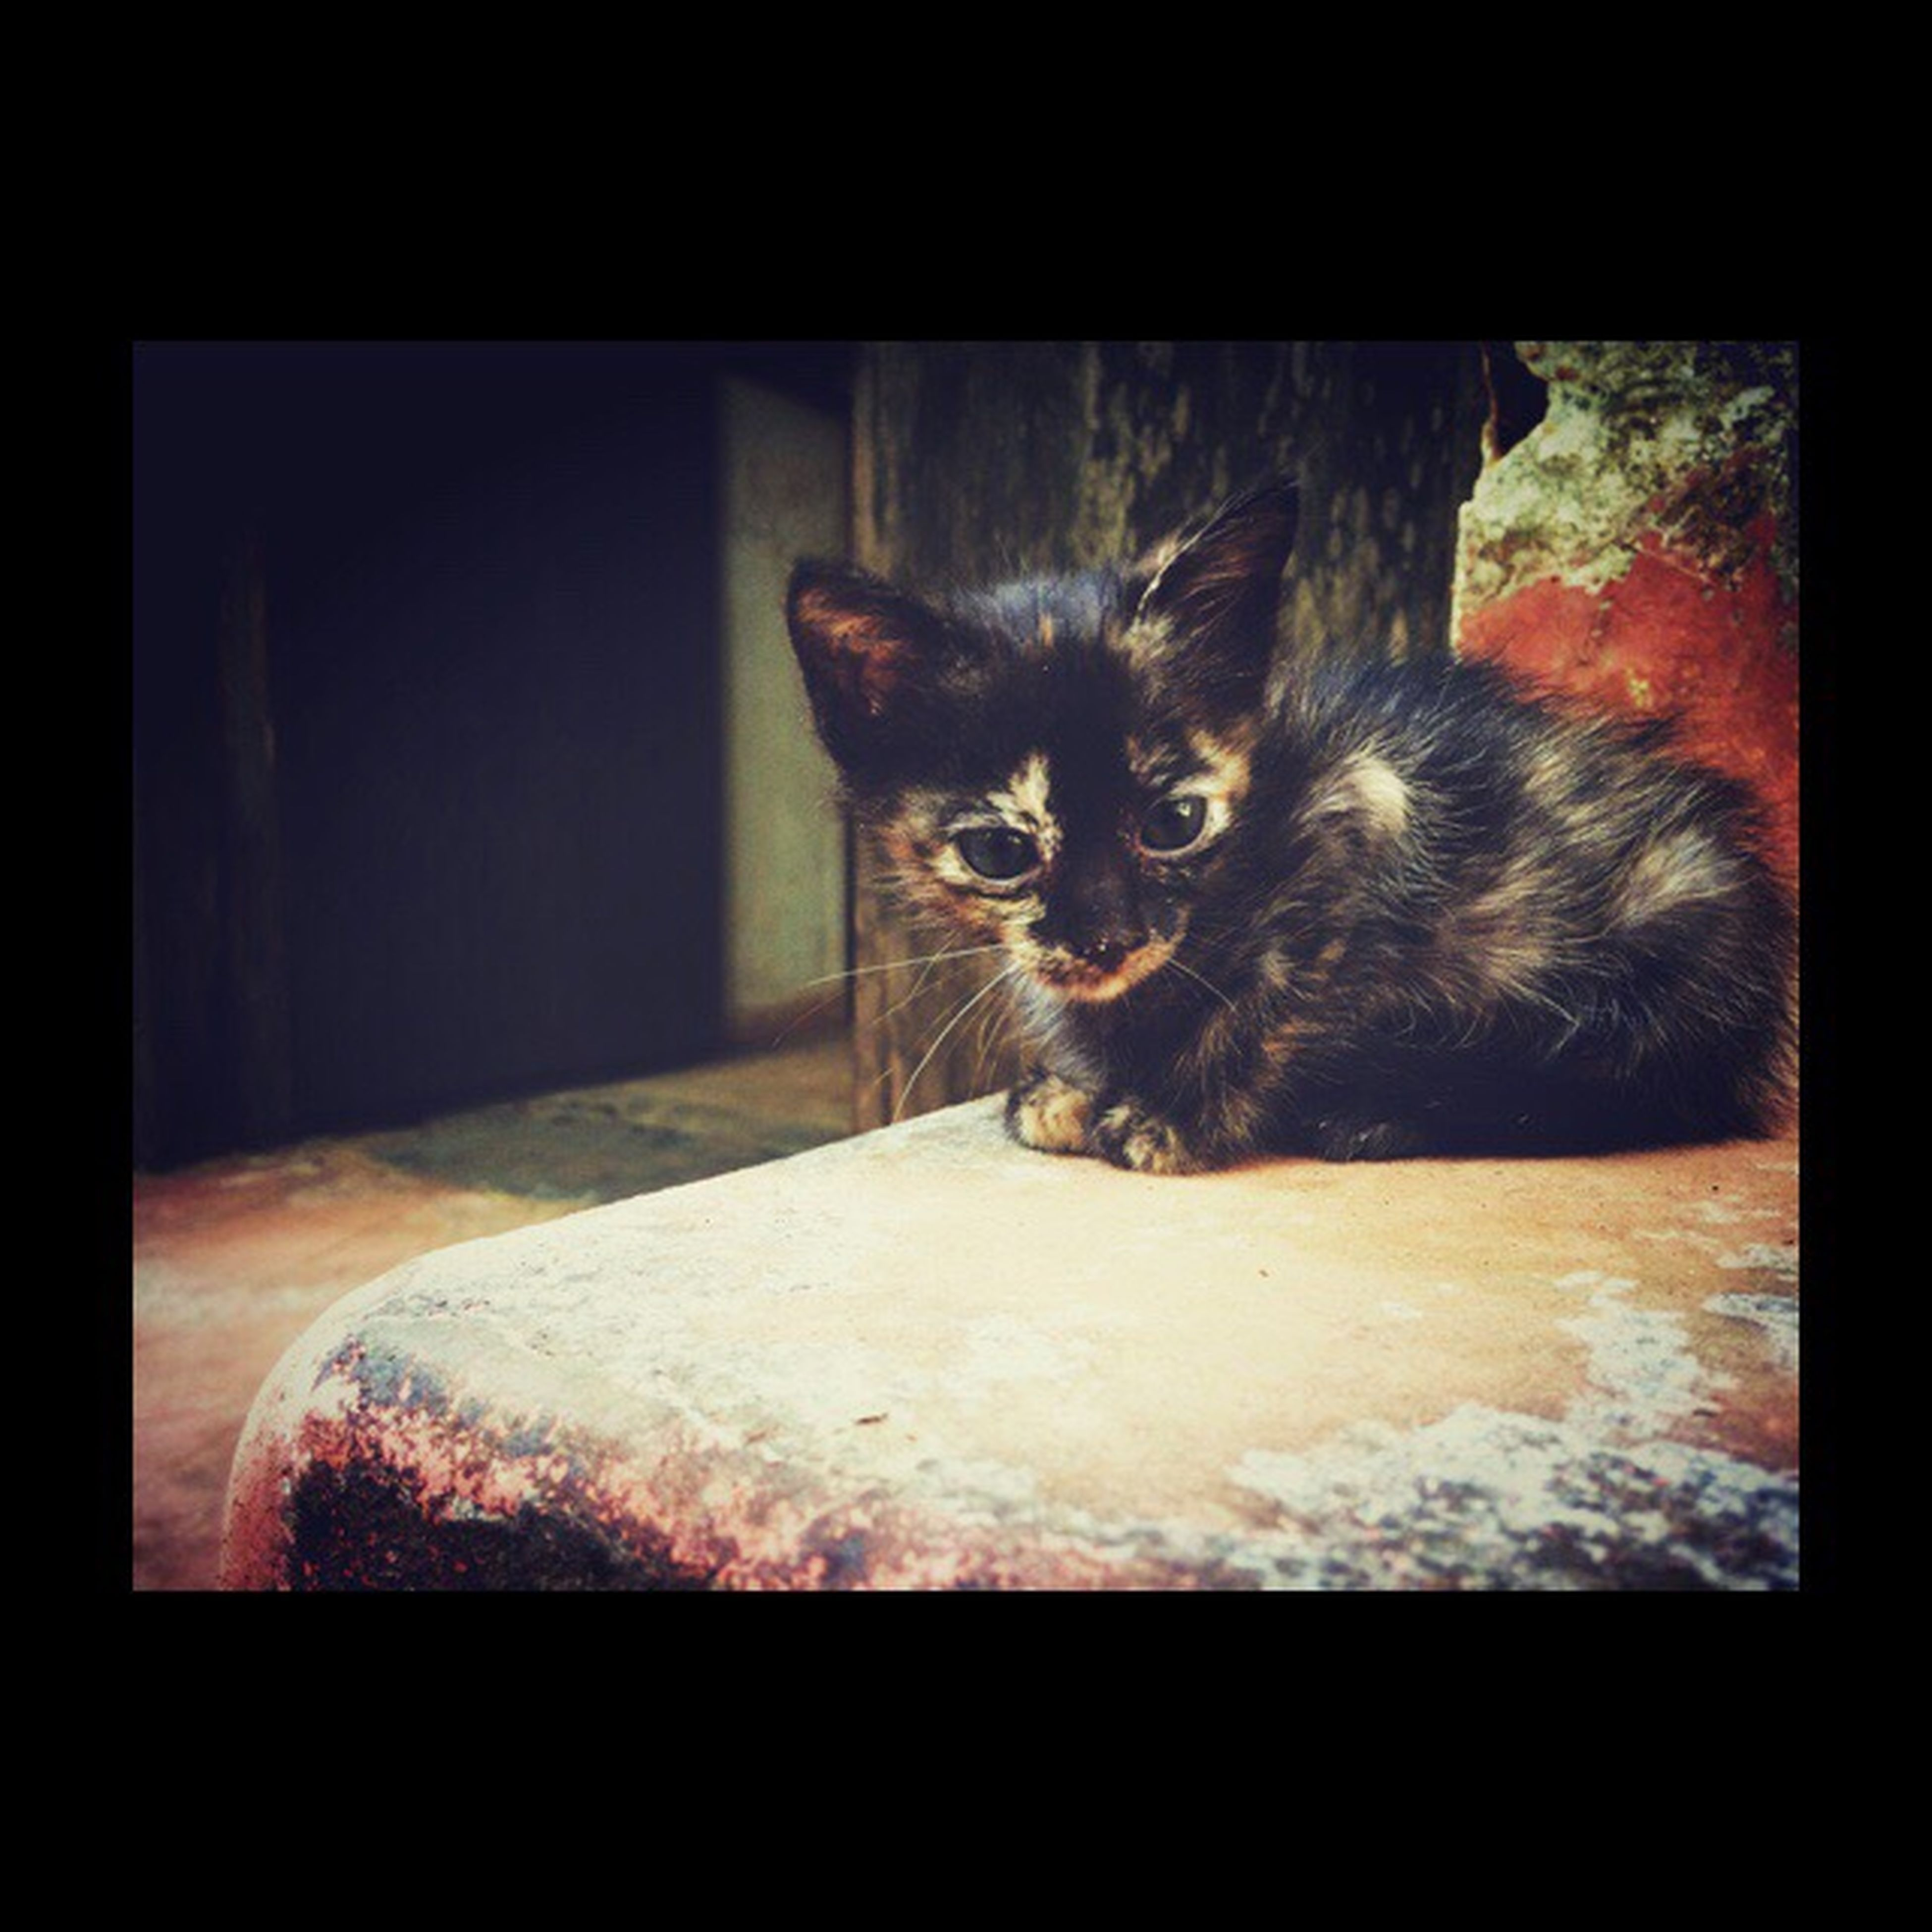 domestic cat, animal themes, pets, domestic animals, one animal, mammal, no people, indoors, feline, day